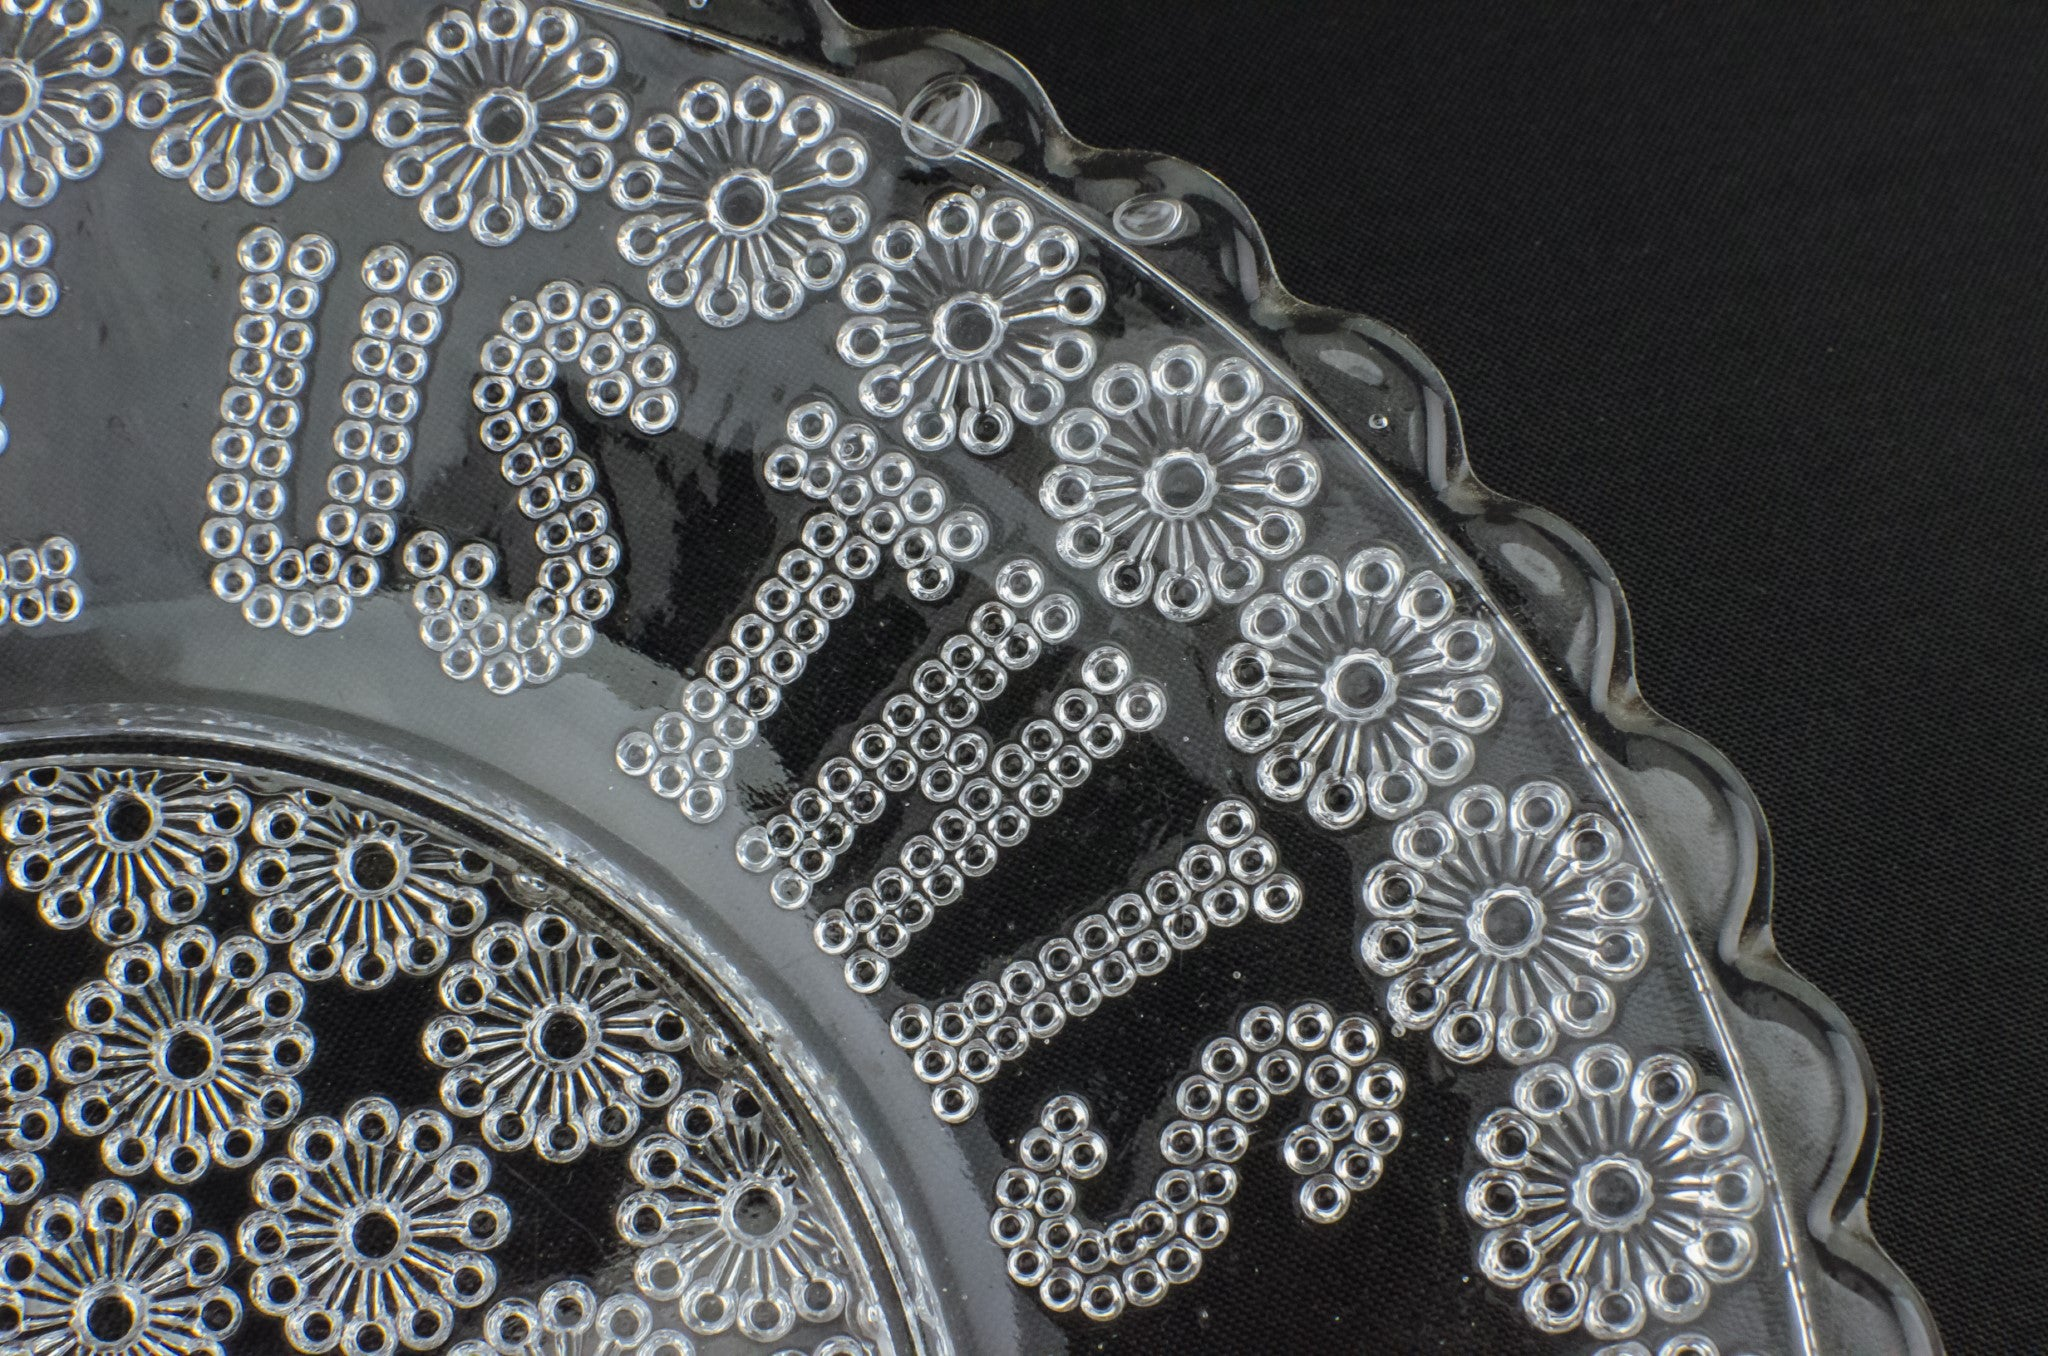 Daisy glass serving dish